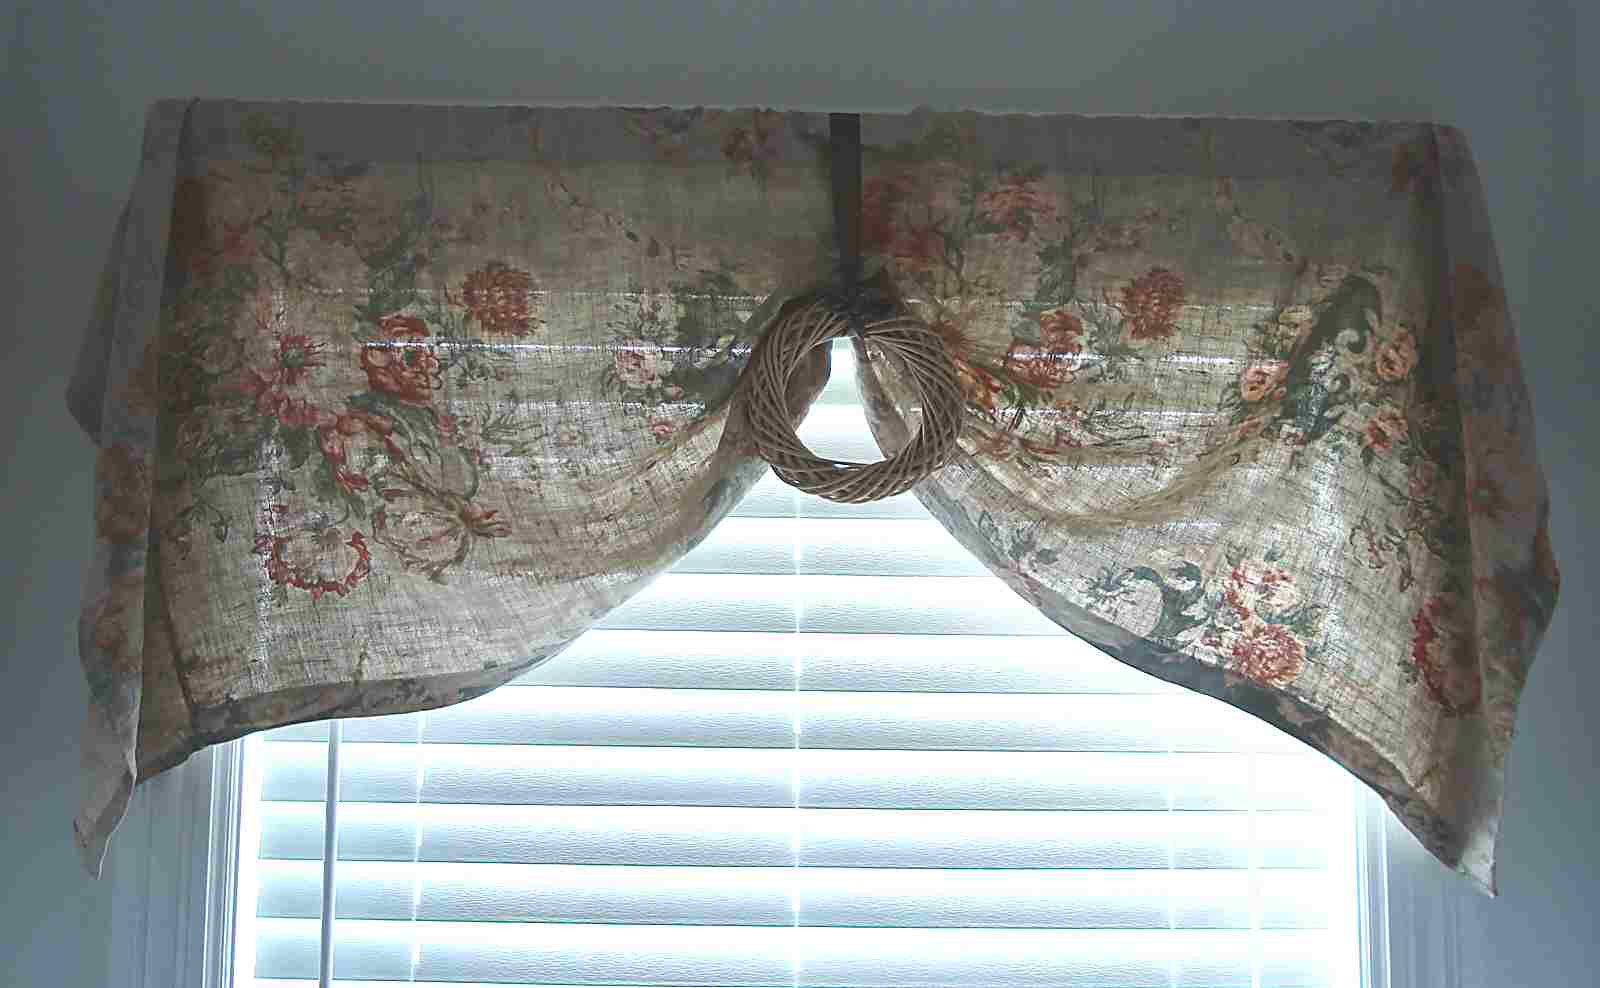 Simple curtain valance - Our First Tutorial Is For This Simple Valance That We Believe Anyone Who Knows How To Measure And Use A Sewing Machine Can Make